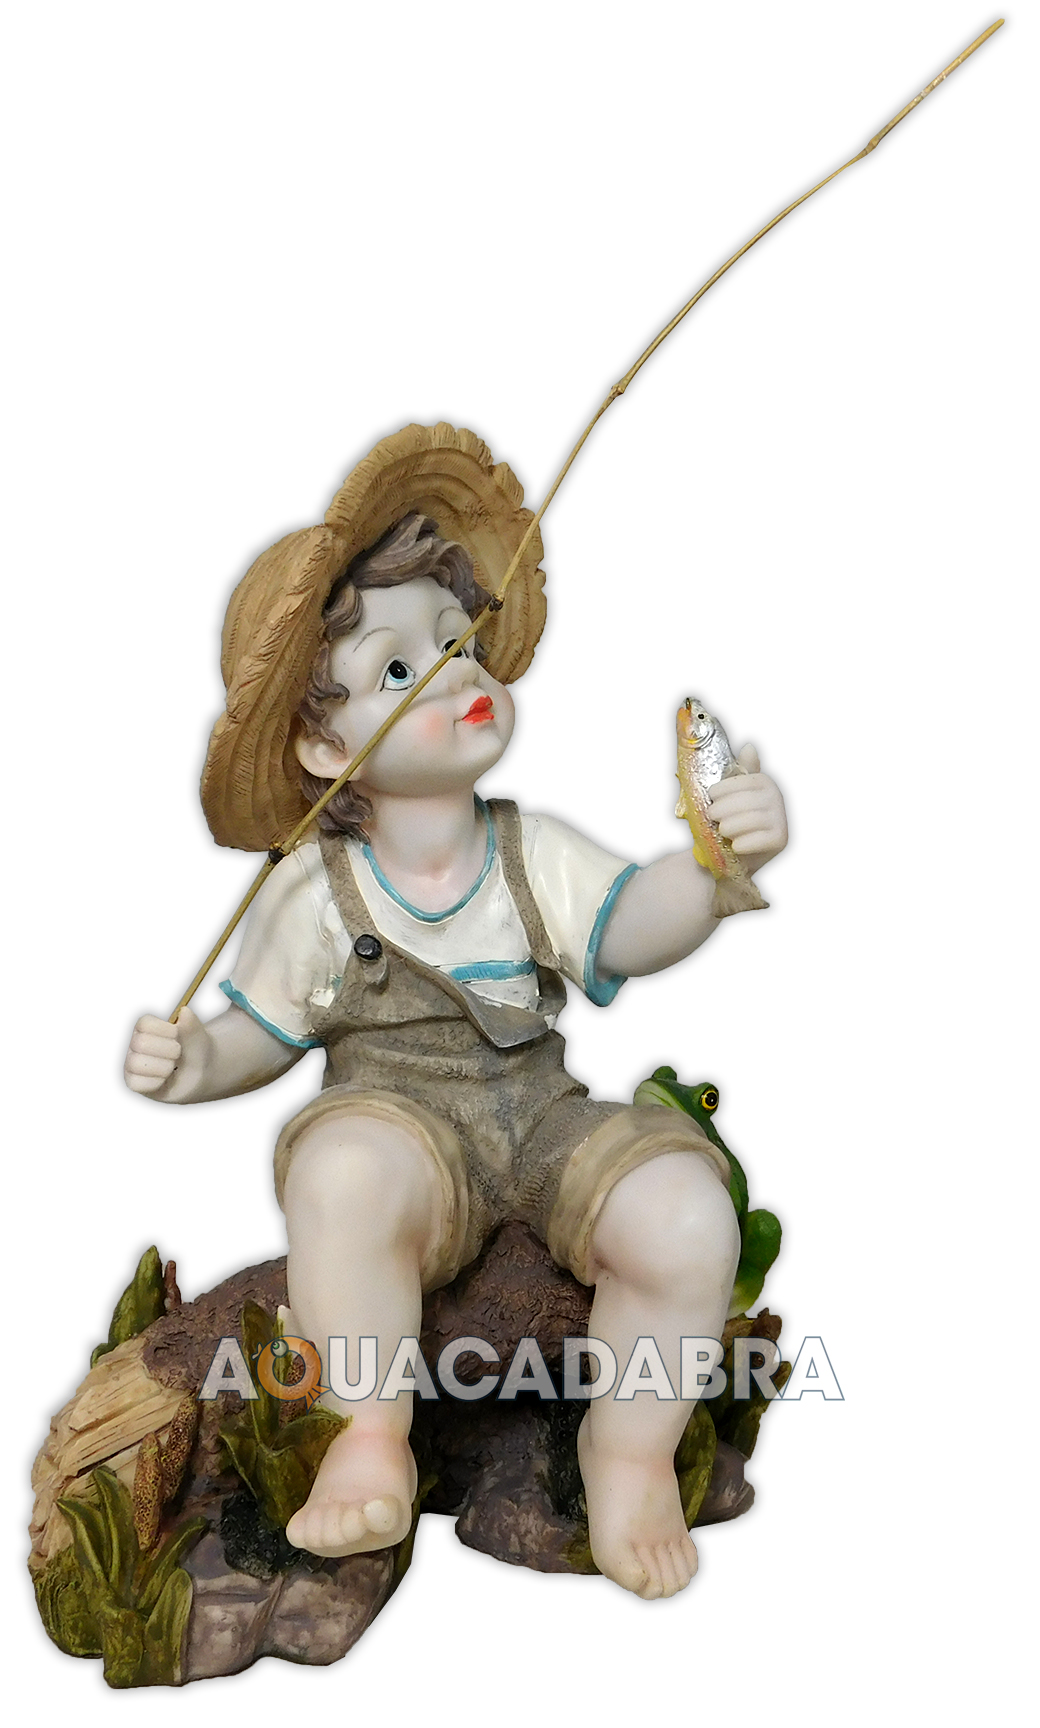 Toscano fishing boy with frog statue garden pond ornament for Garden pond ornaments uk